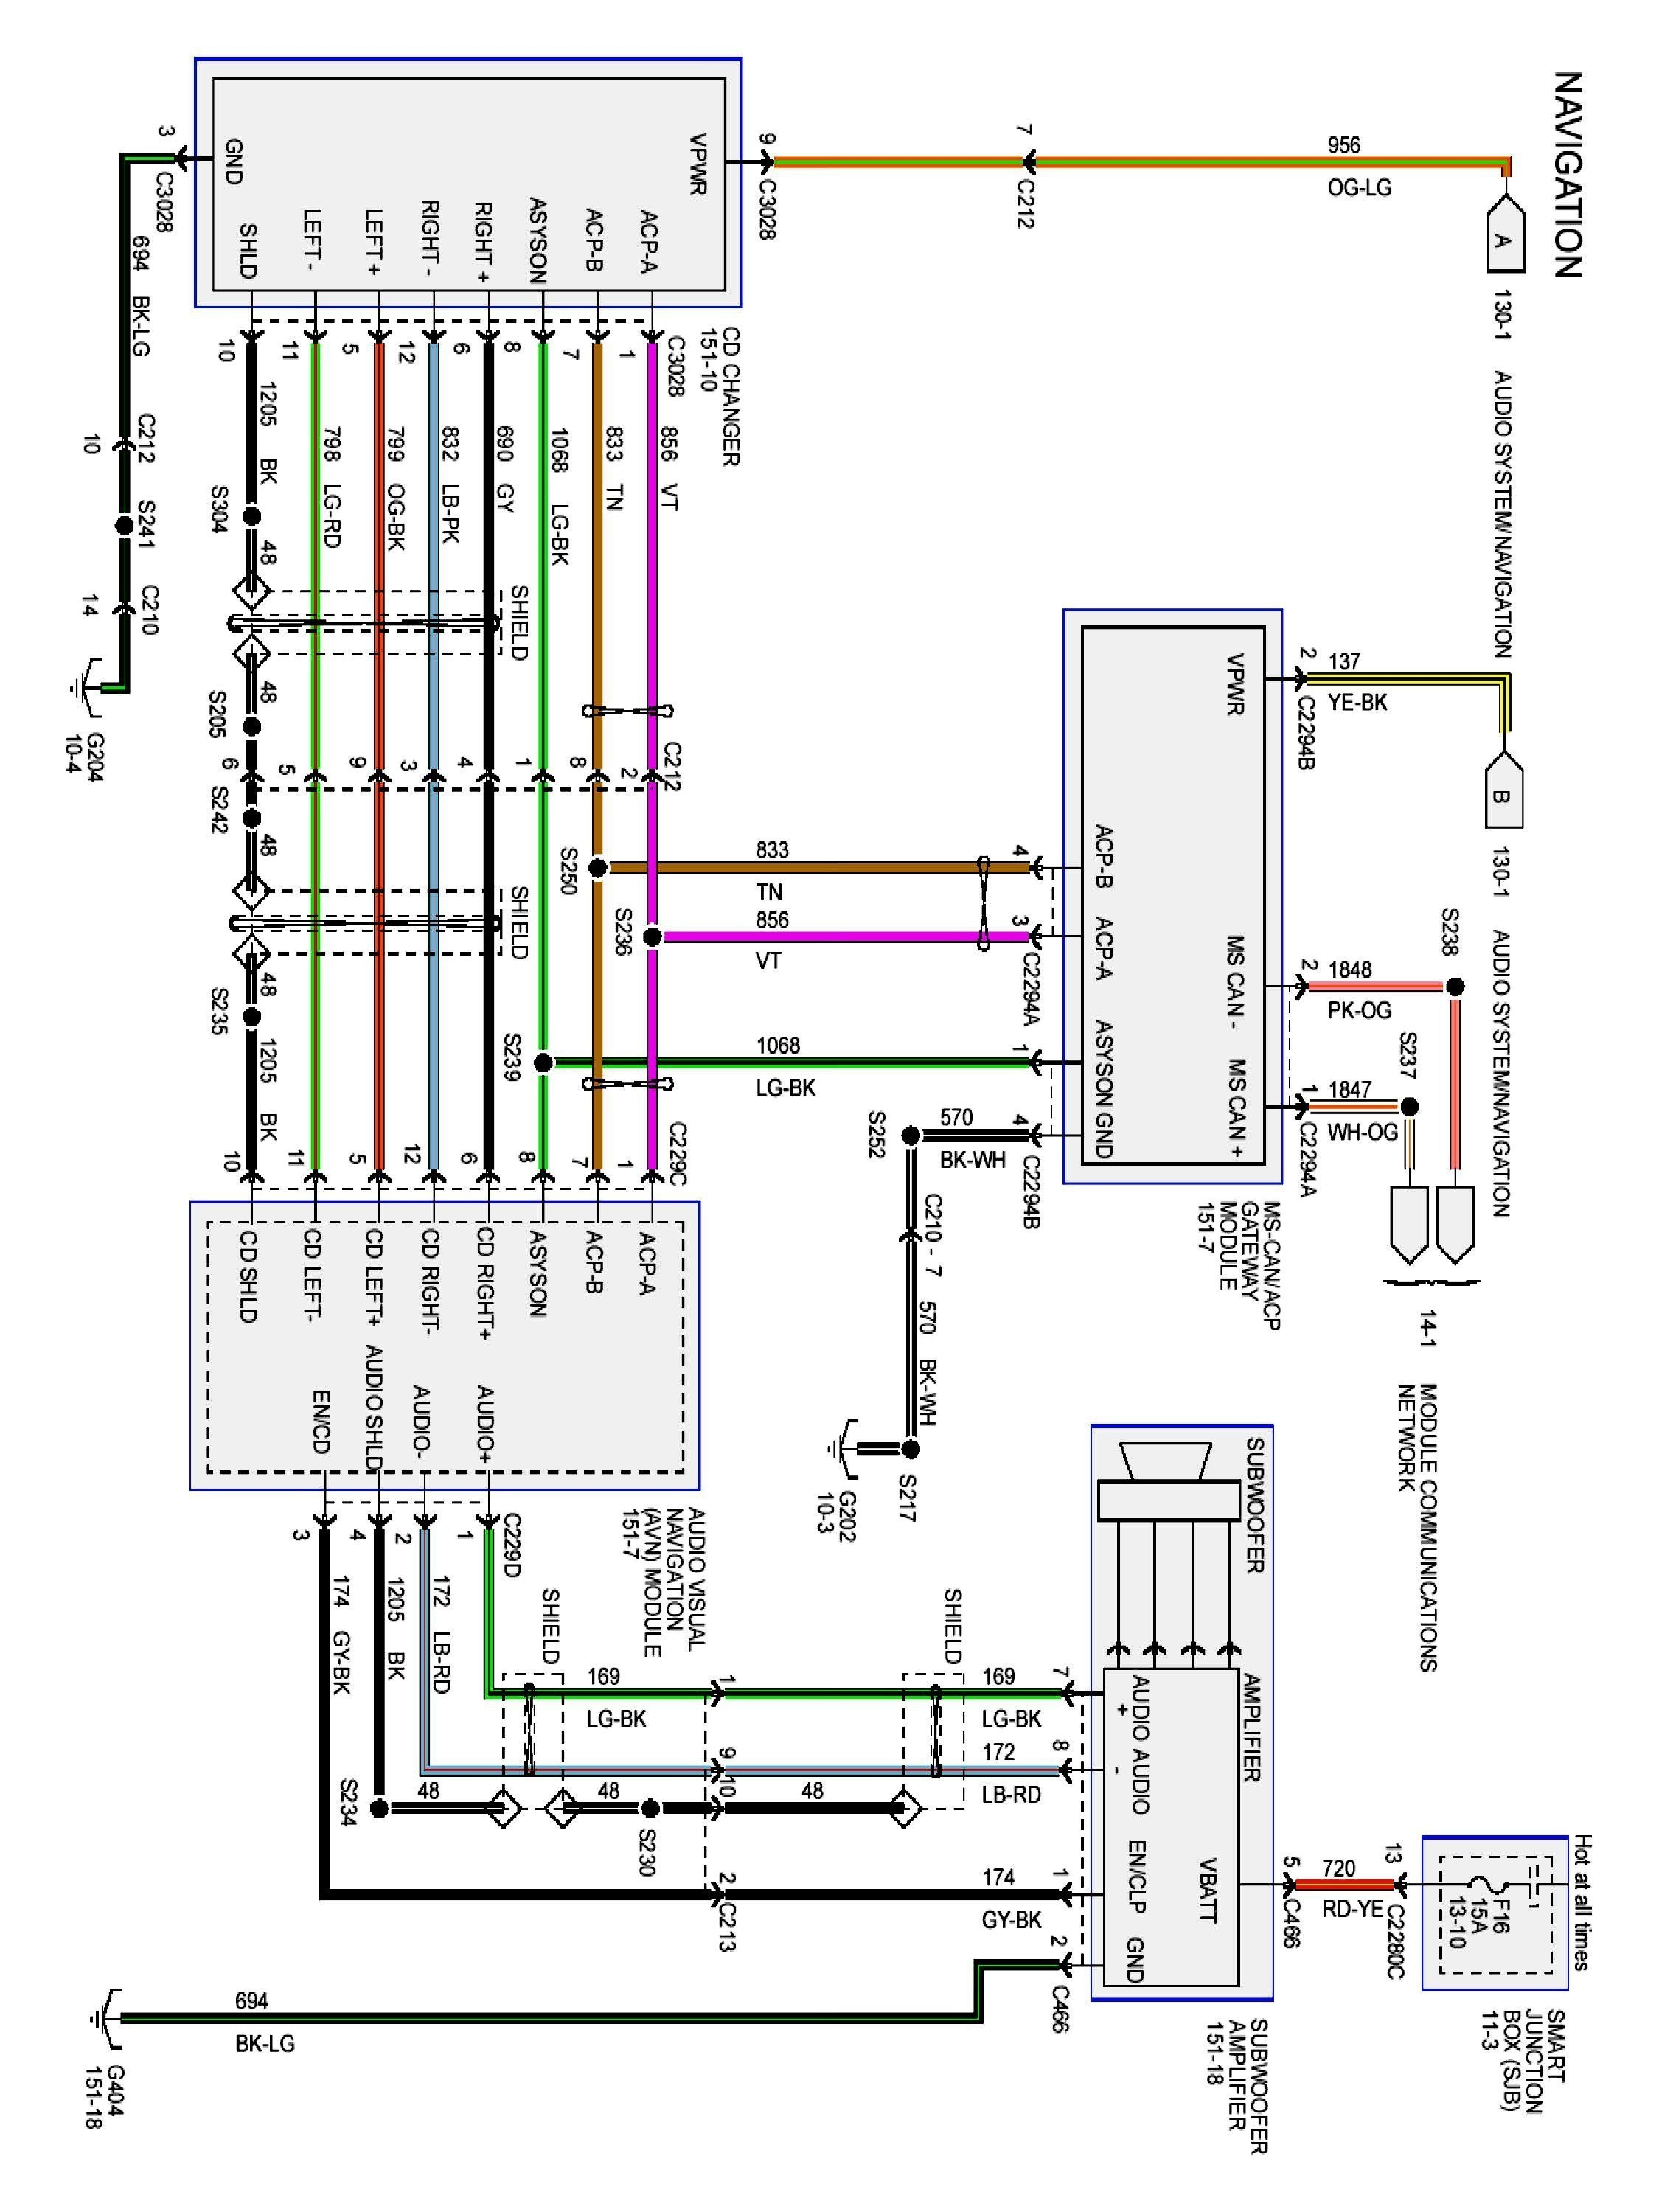 2012 Ford F250 Trailer Wiring - 2000 Ford F350 Fuse Box Diagram for Wiring  Diagram SchematicsWiring Diagram Schematics